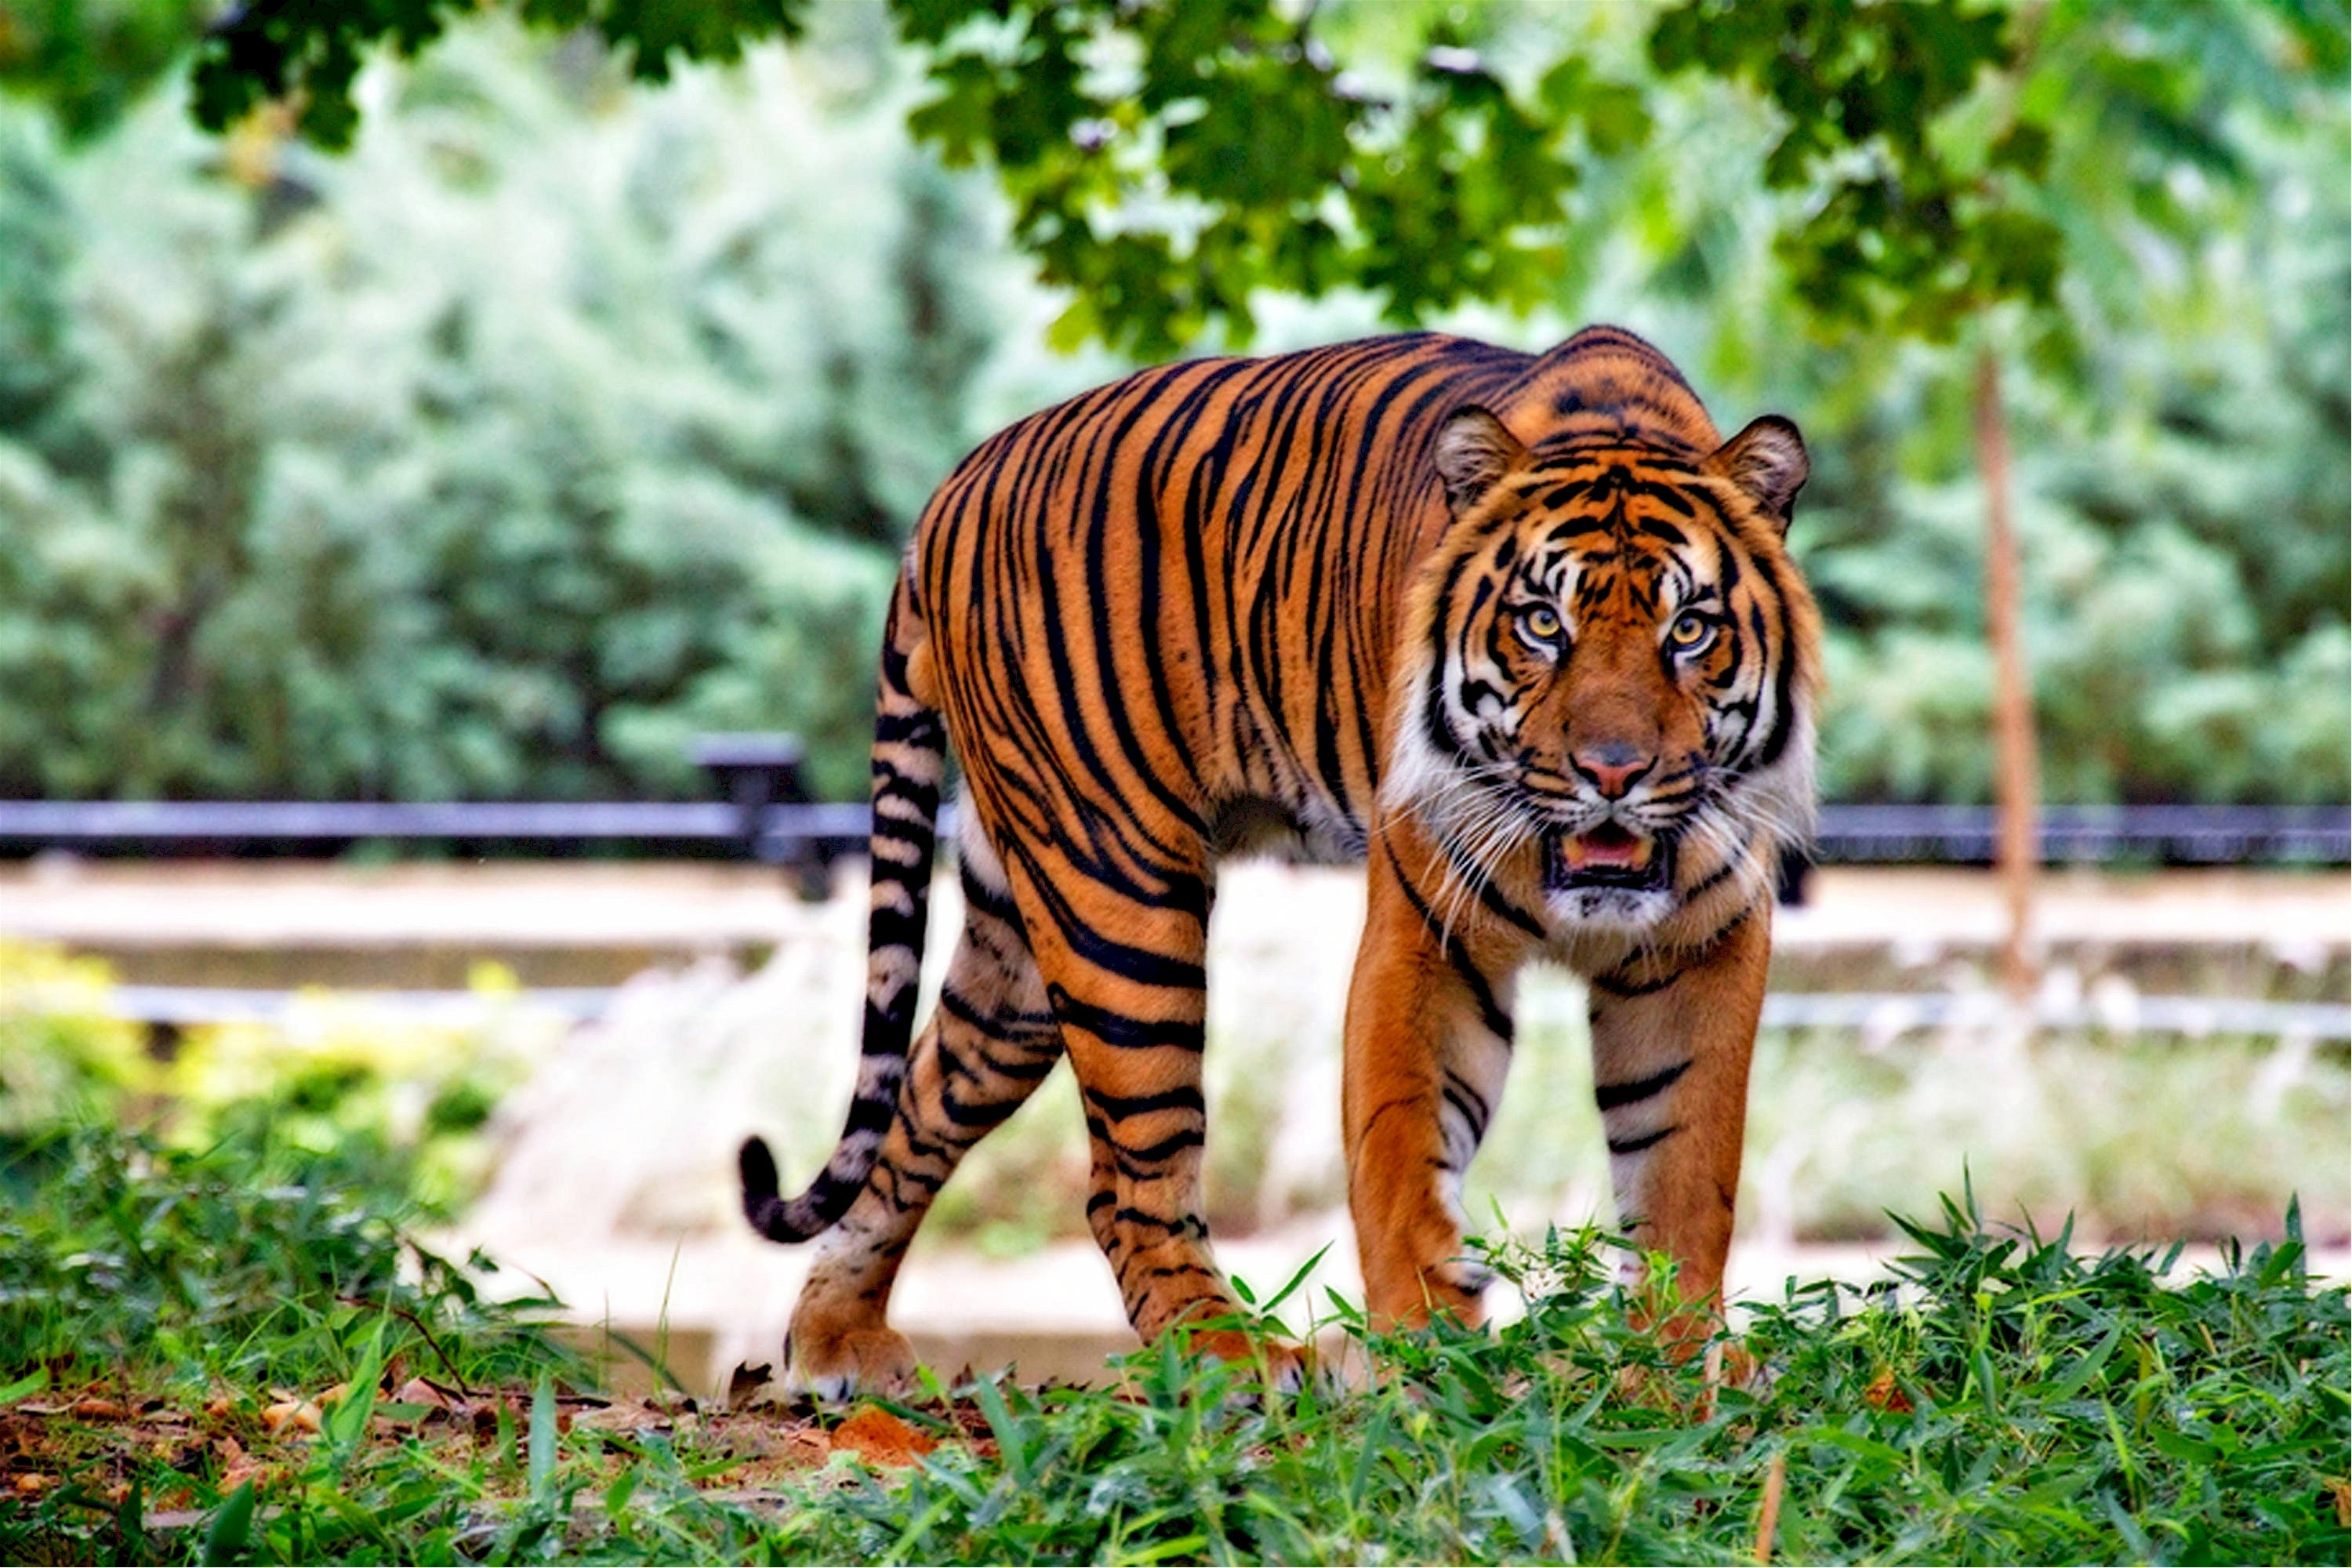 image about Printable Tiger Pictures named 100+ Majestic Tiger Pics · Pexels · No cost Inventory Shots